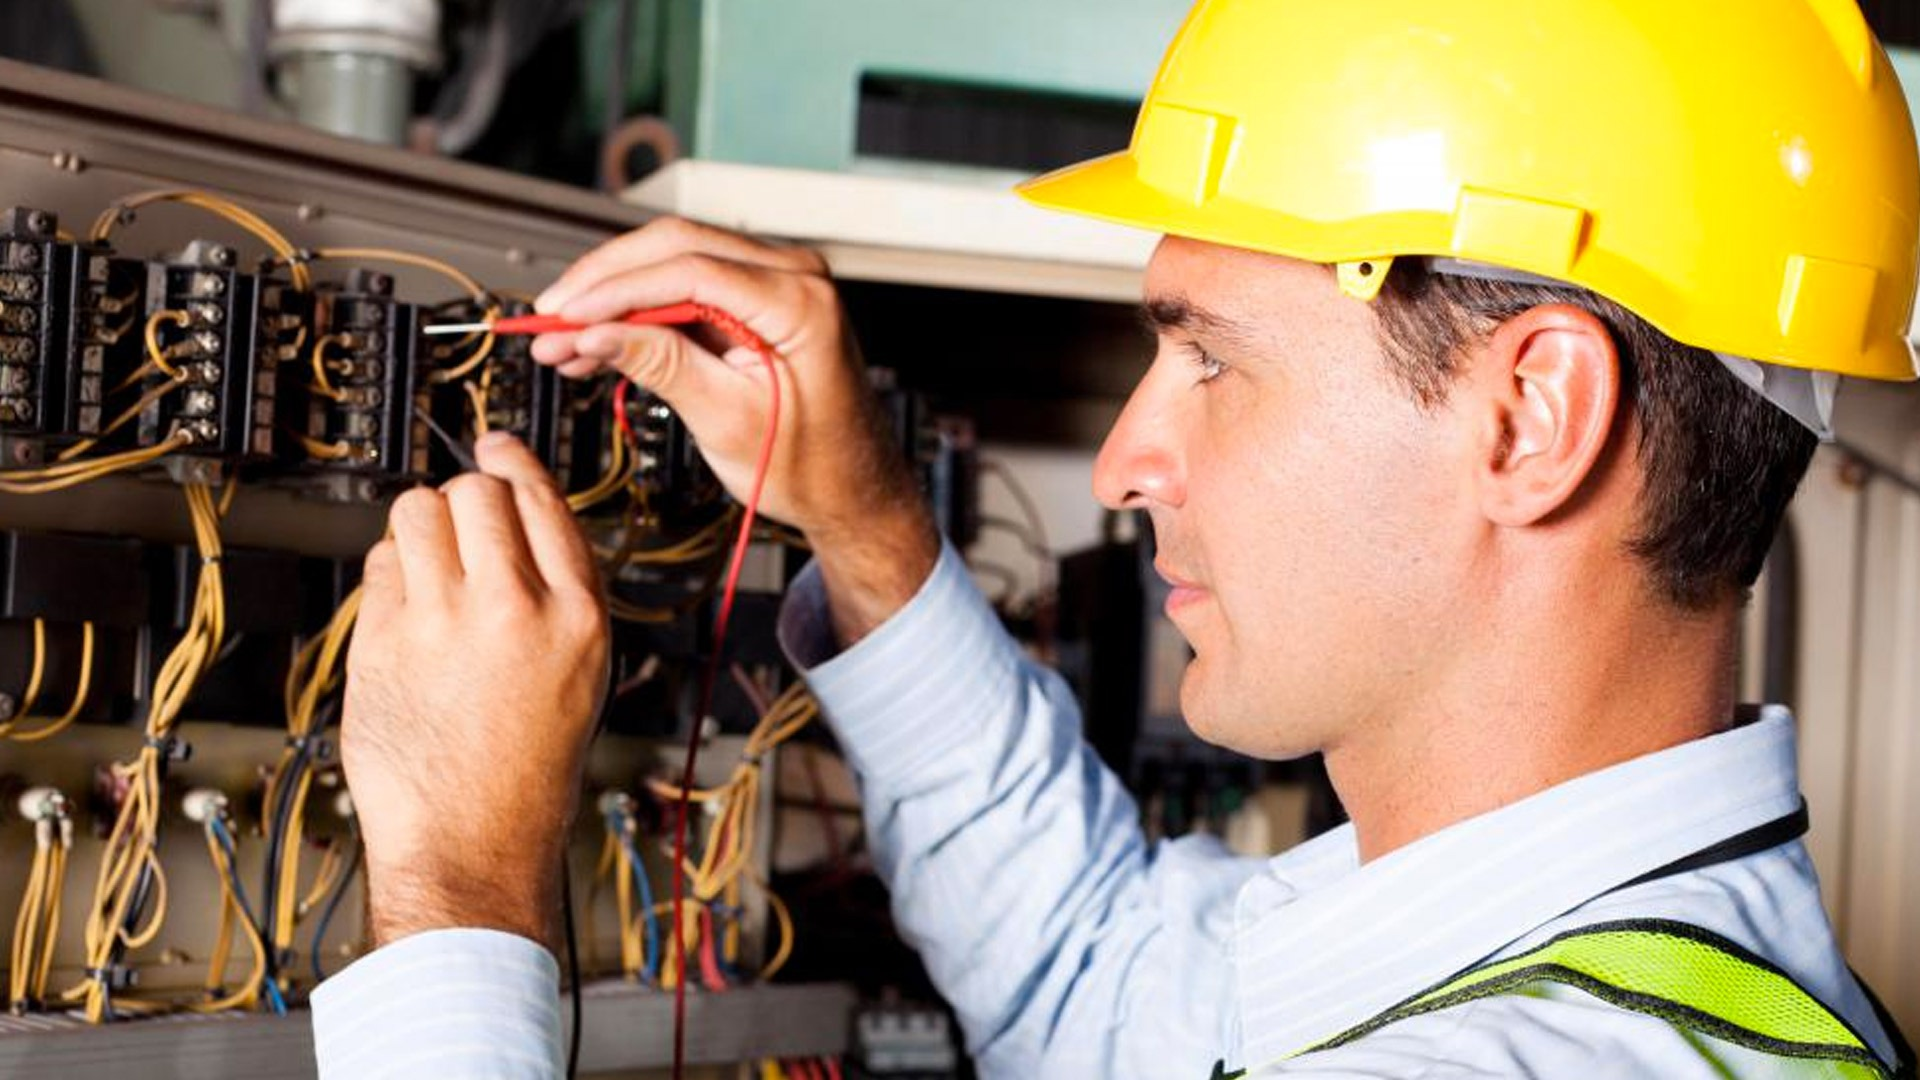 Perth electrical contractors 021 - Training Basic MEP (Mechanical Electrical Plumbing)